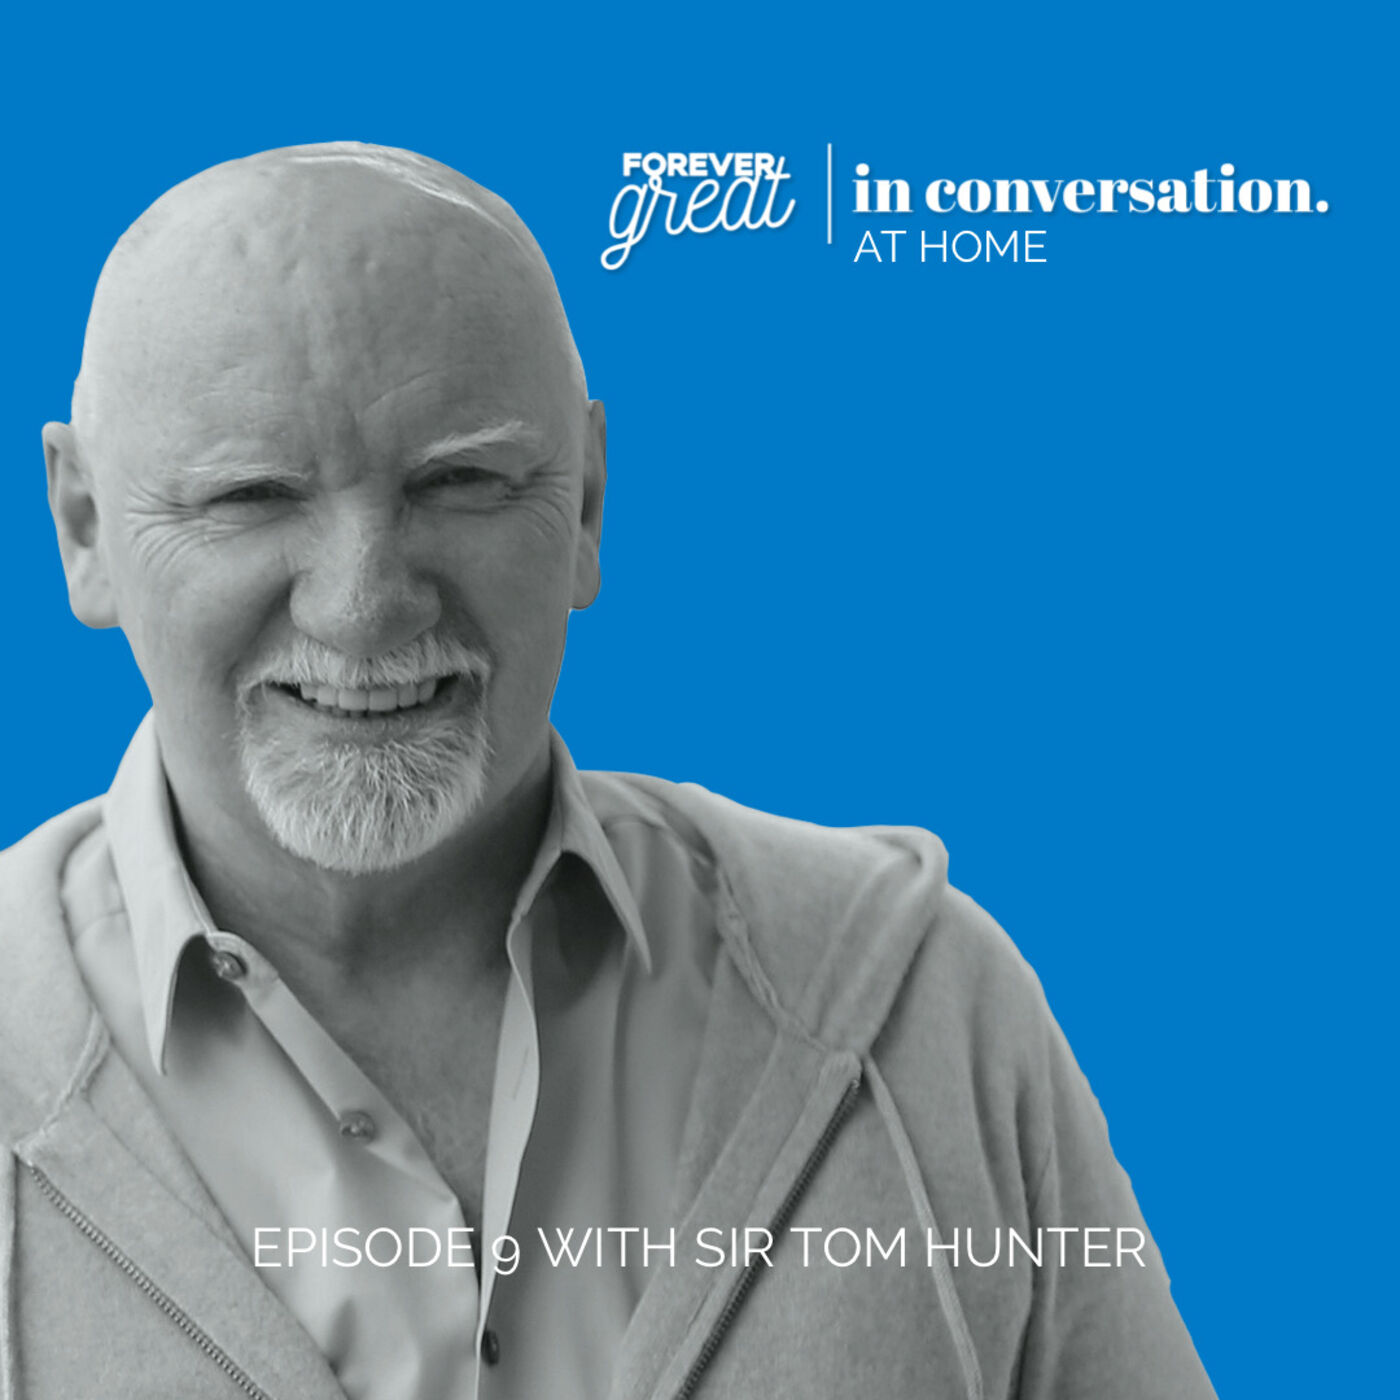 Forever Great in Conversation with Sir Tom Hunter | Season 1 | Episode 9 🎬